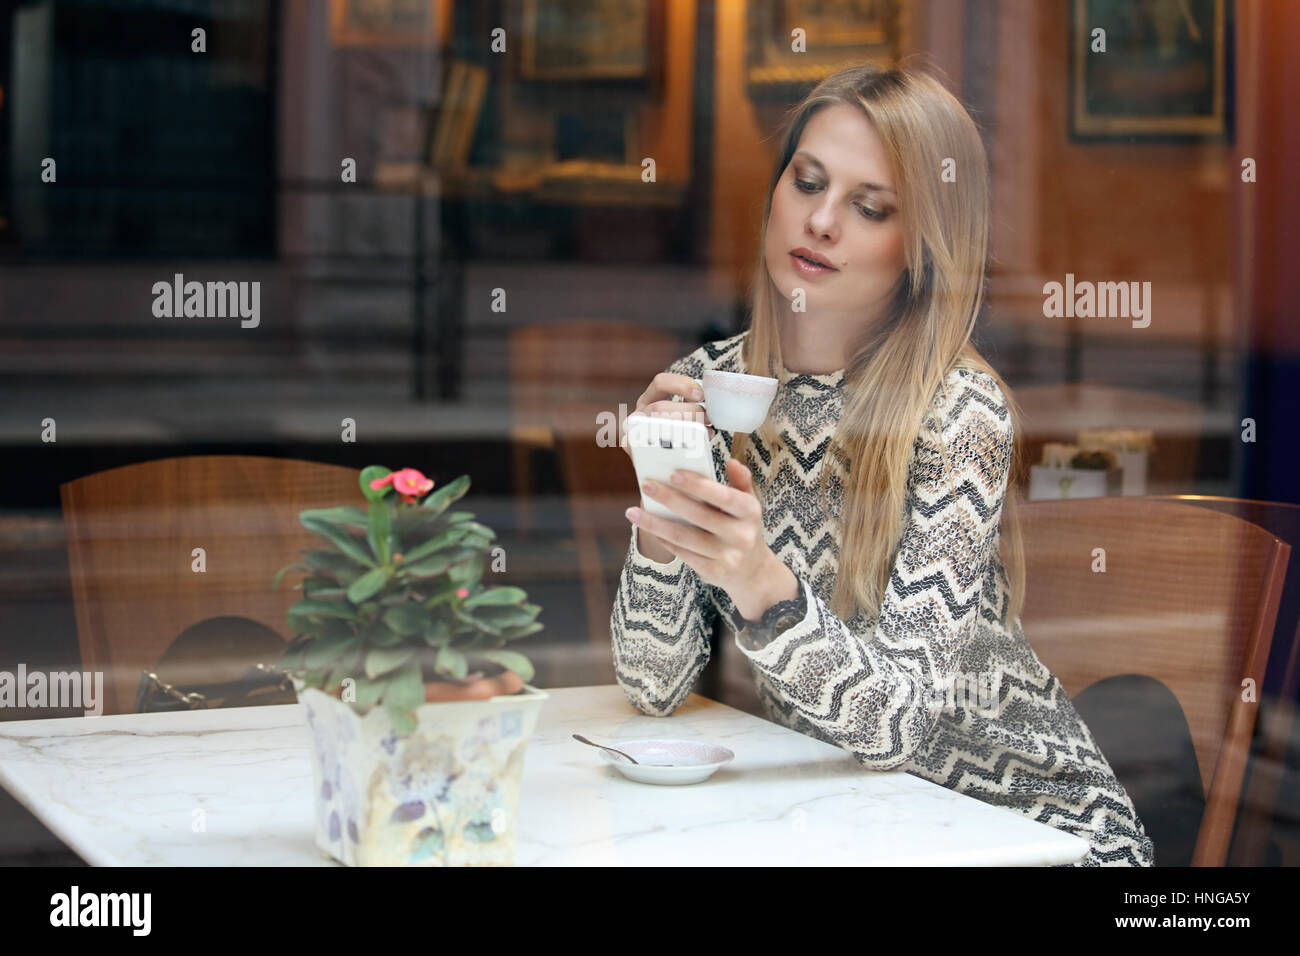 Beautiful girl using her mobile phone in cafe. City lifestyle - Stock Image